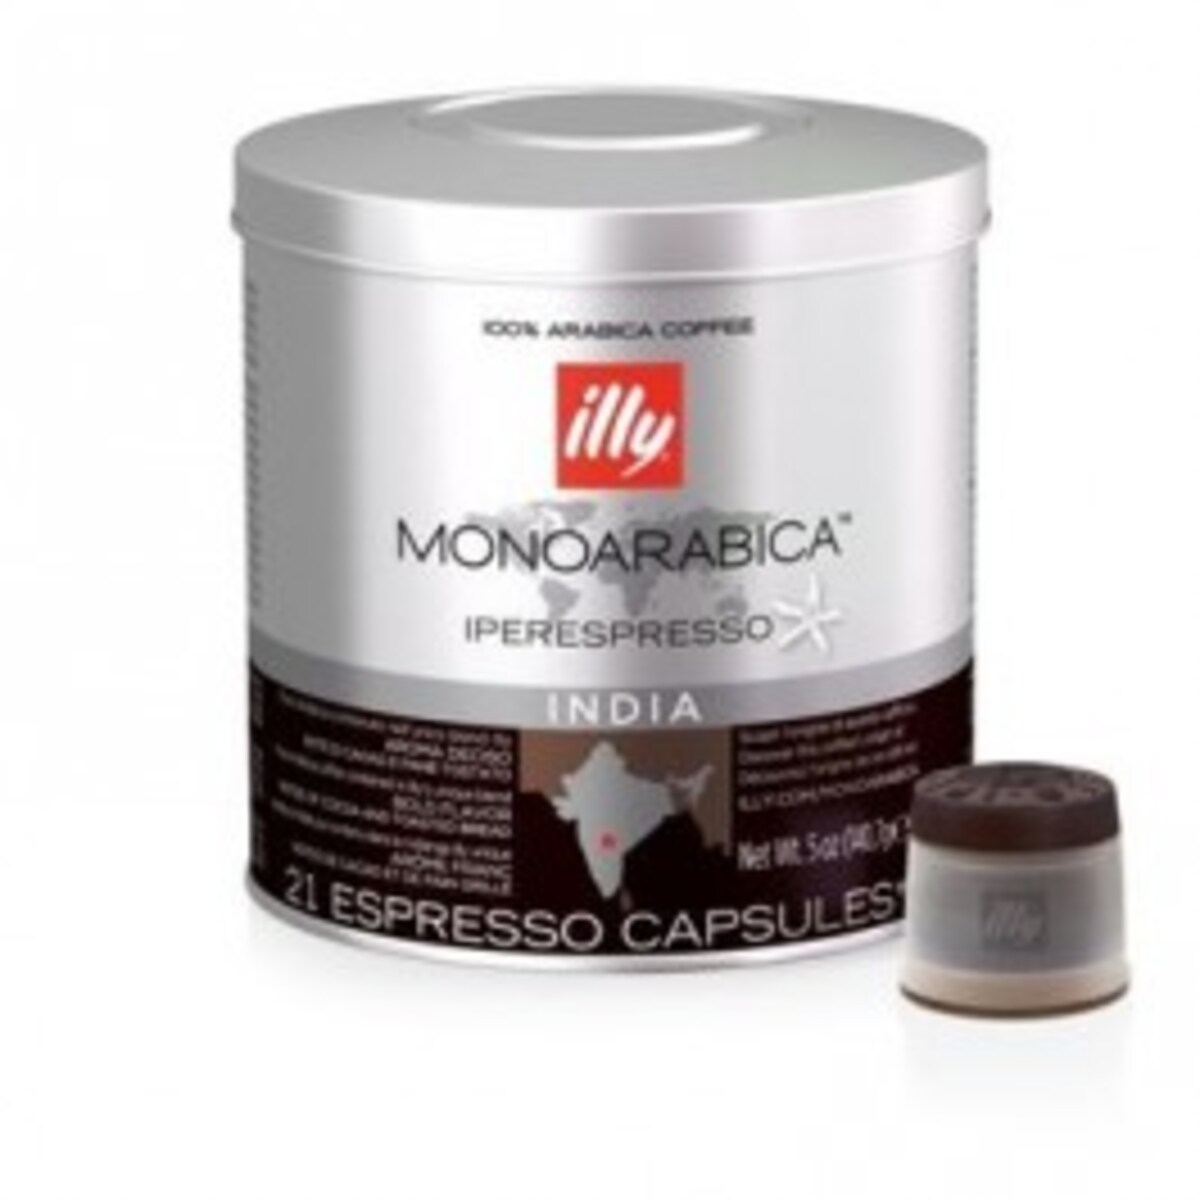 illy Iper Home Normal Monoarabica India - 21бр капсули